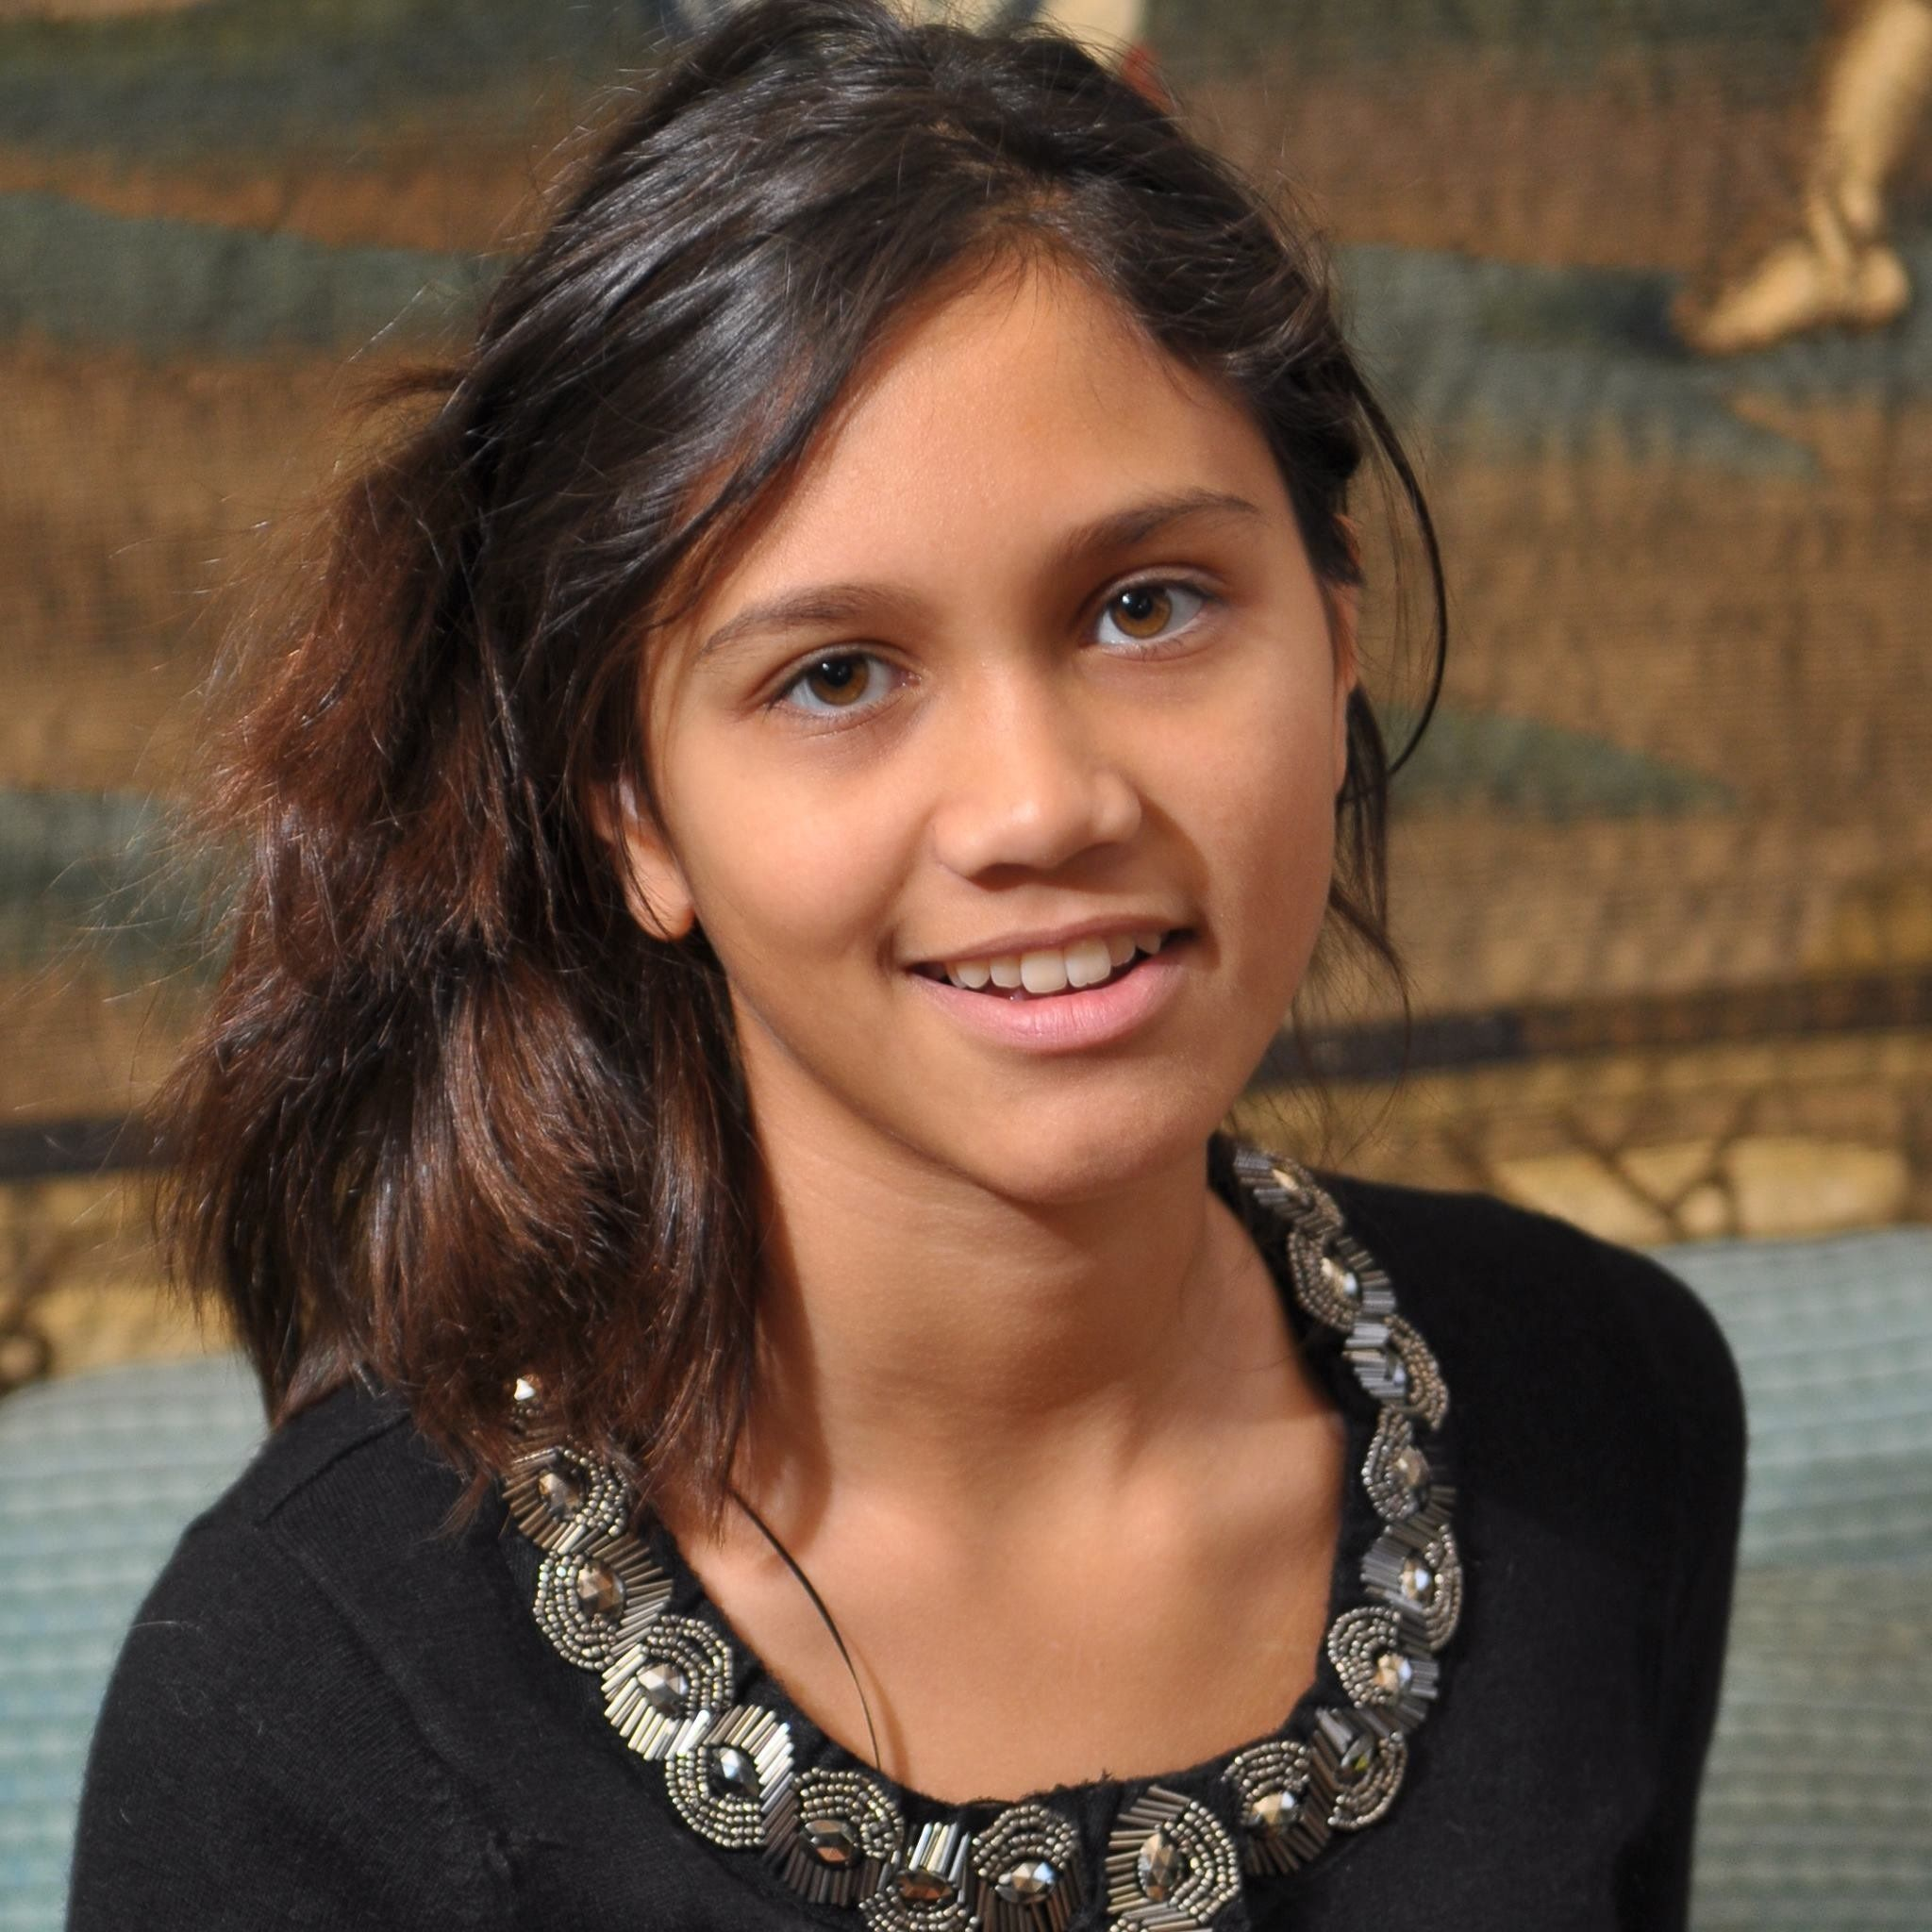 This Incredible 13-Year-Old Helped Save More Lives Than Any Other Organ